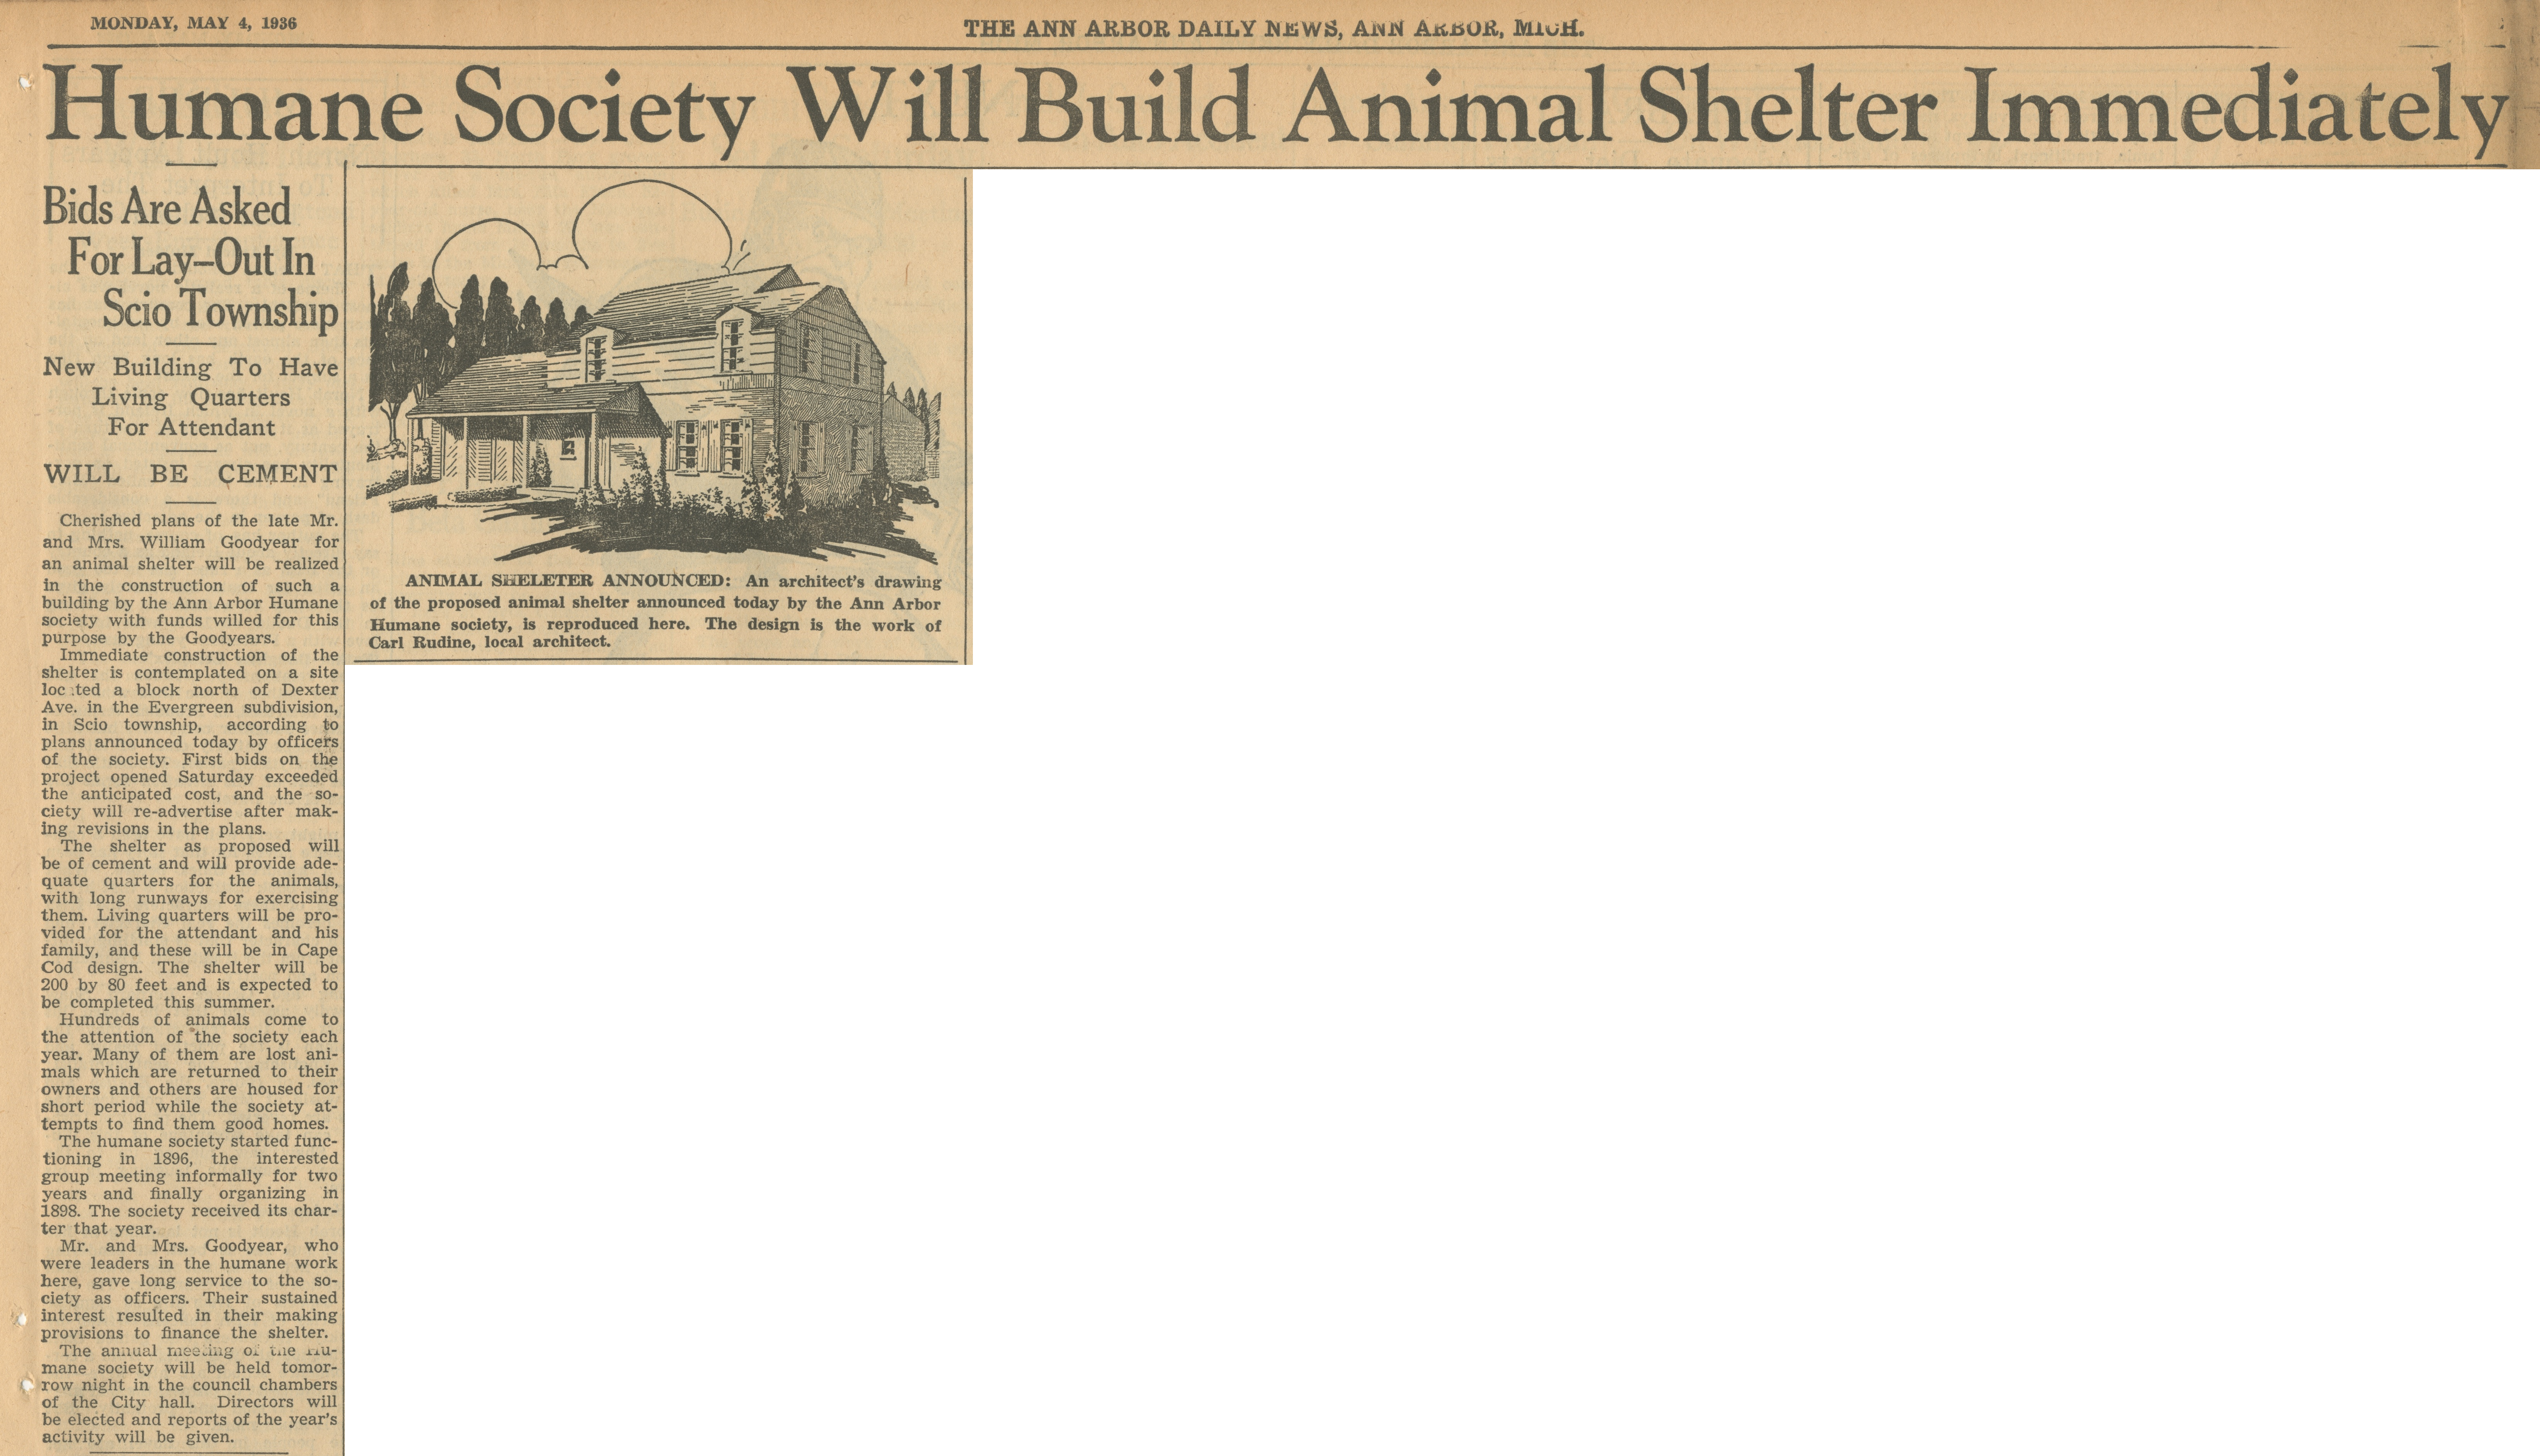 Humane Society Will Build Animal Shelter Immediately image